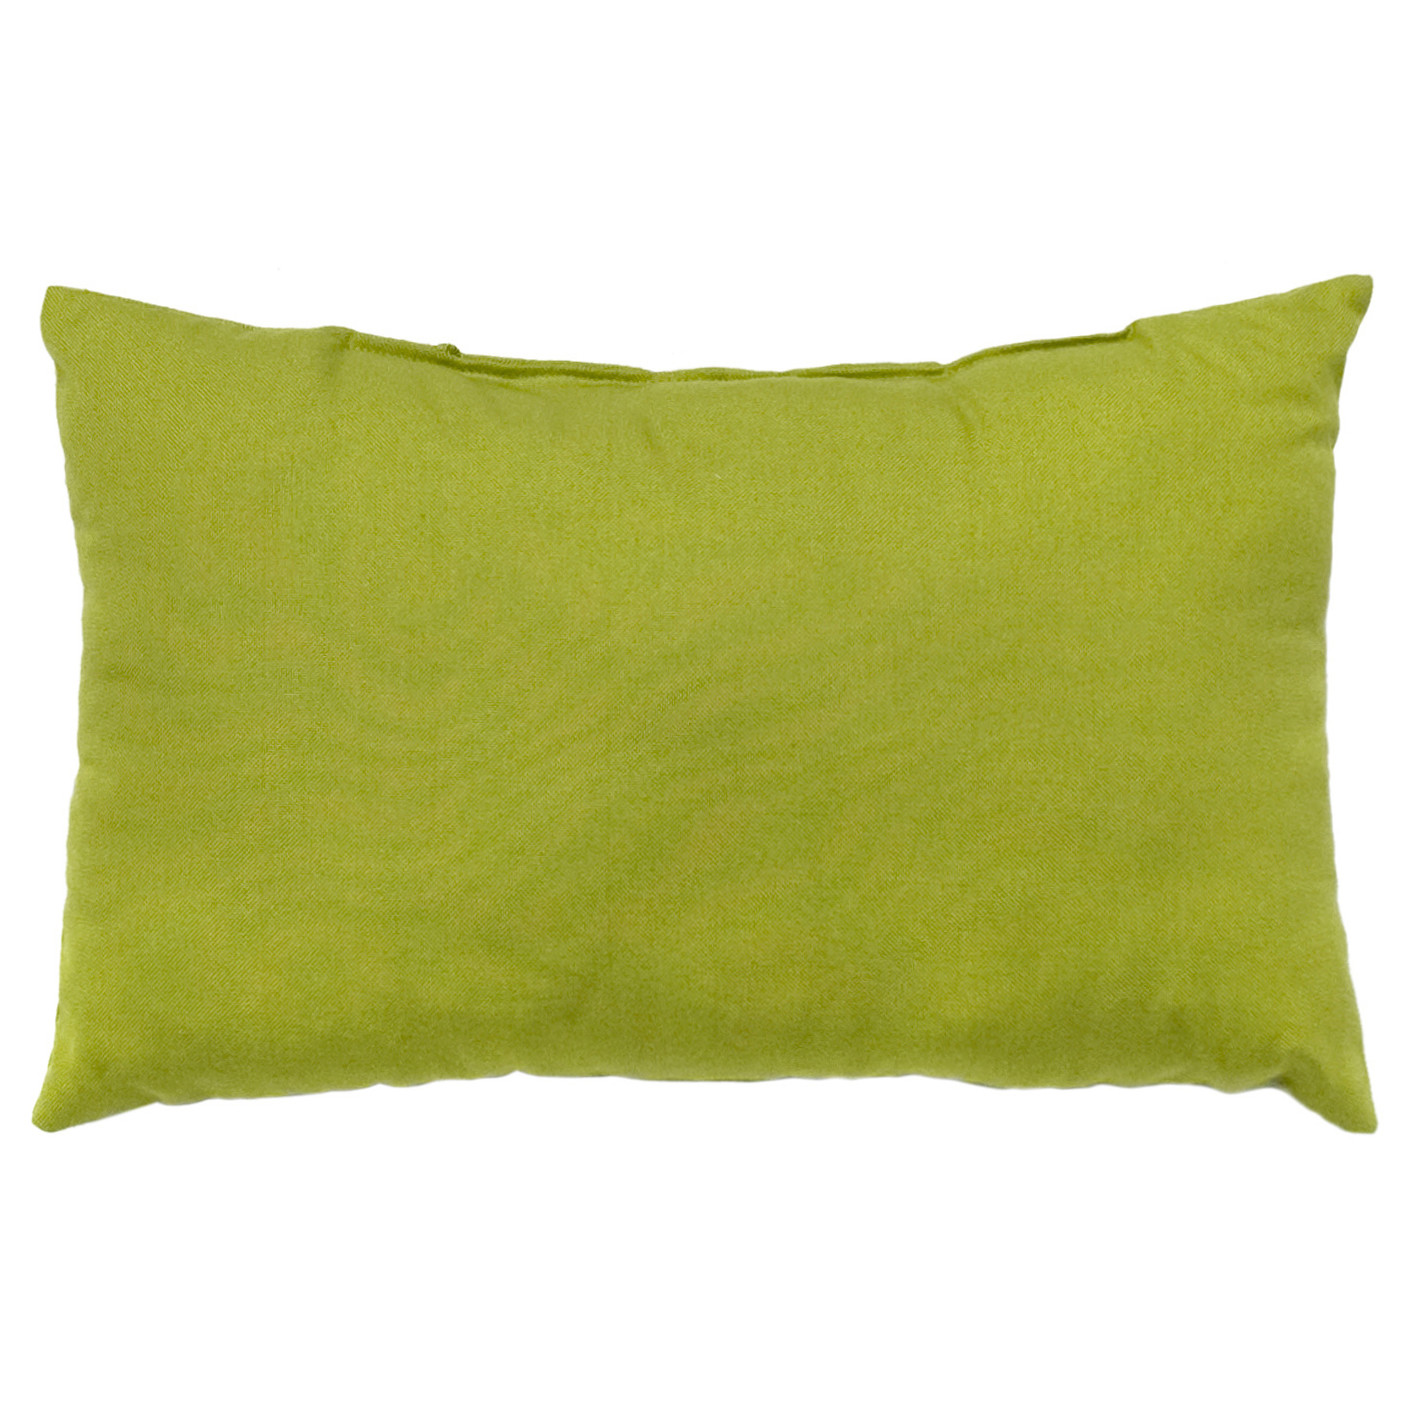 Classy outdoor throw pillows for outdoor design with cheap outdoor throw pillows